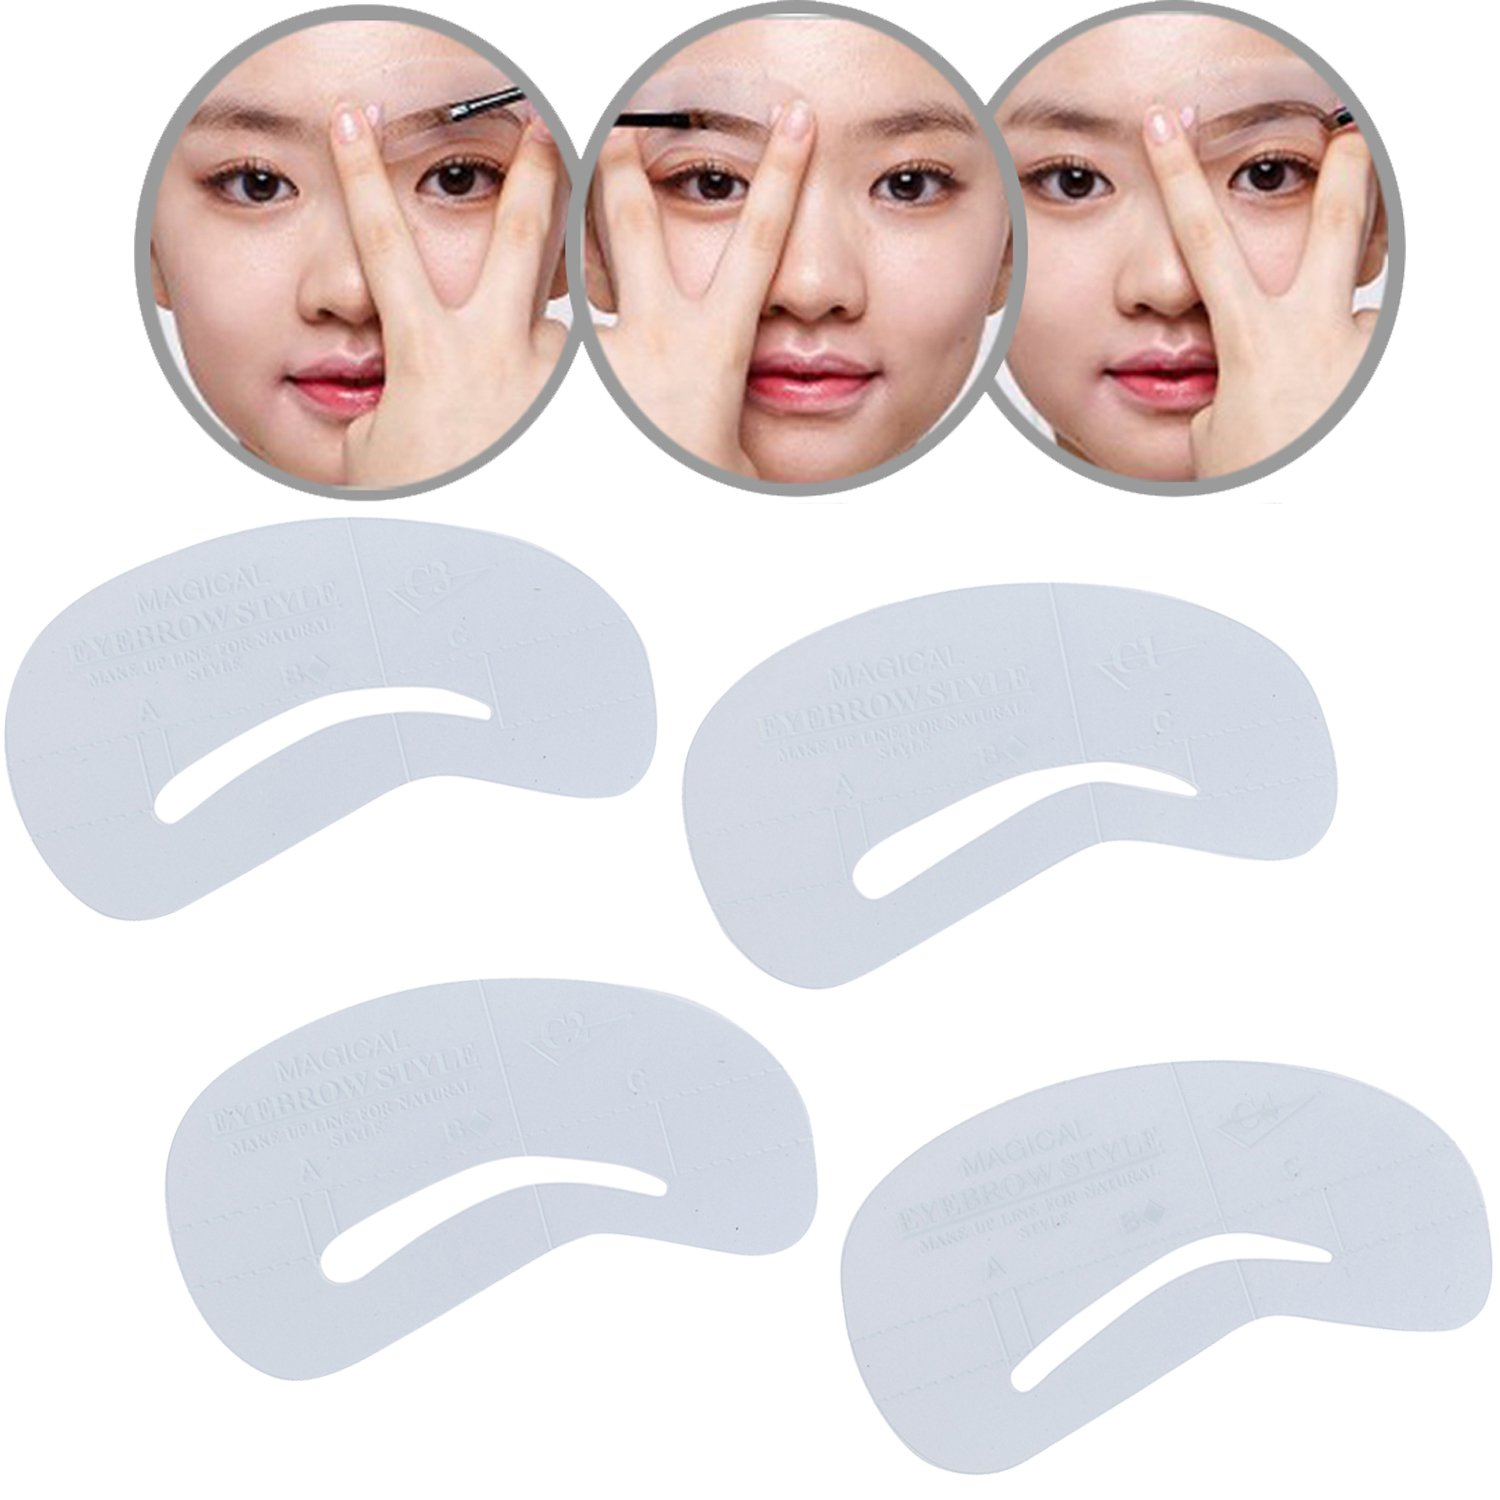 Premium Professional Beauty Make Up Set Kit of 4 Clear C1-C4 Eyebrows Grooming Shaping Stencils / Cards / Shapers / Templates By VAGA